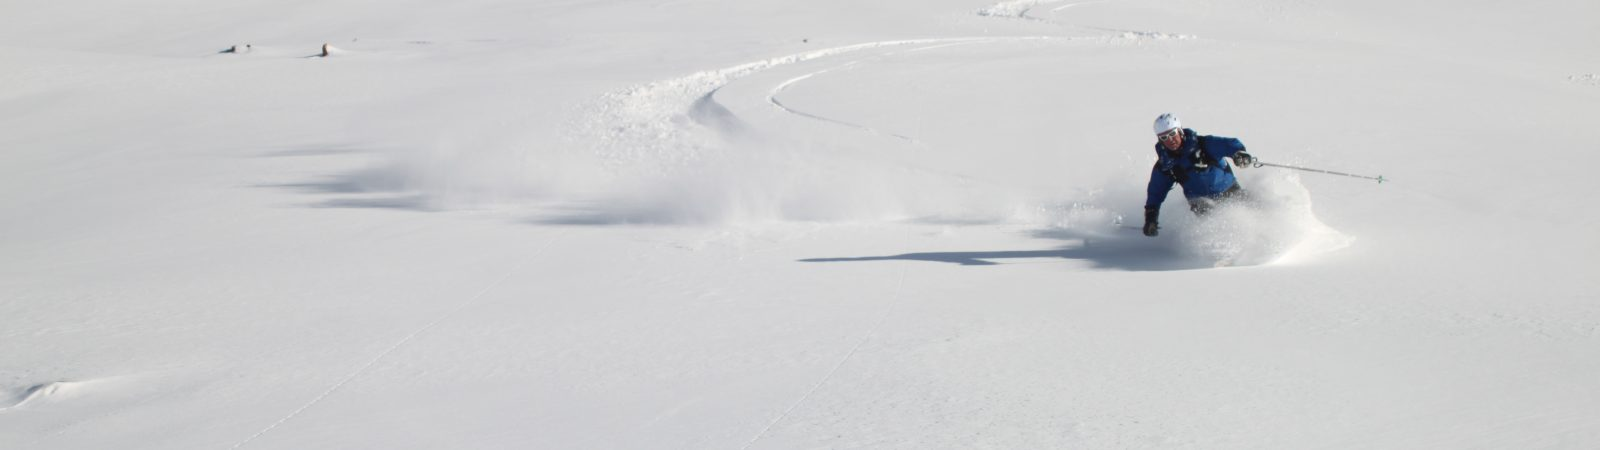 Zermatt Off-Piste, Freeride Guided Skiing